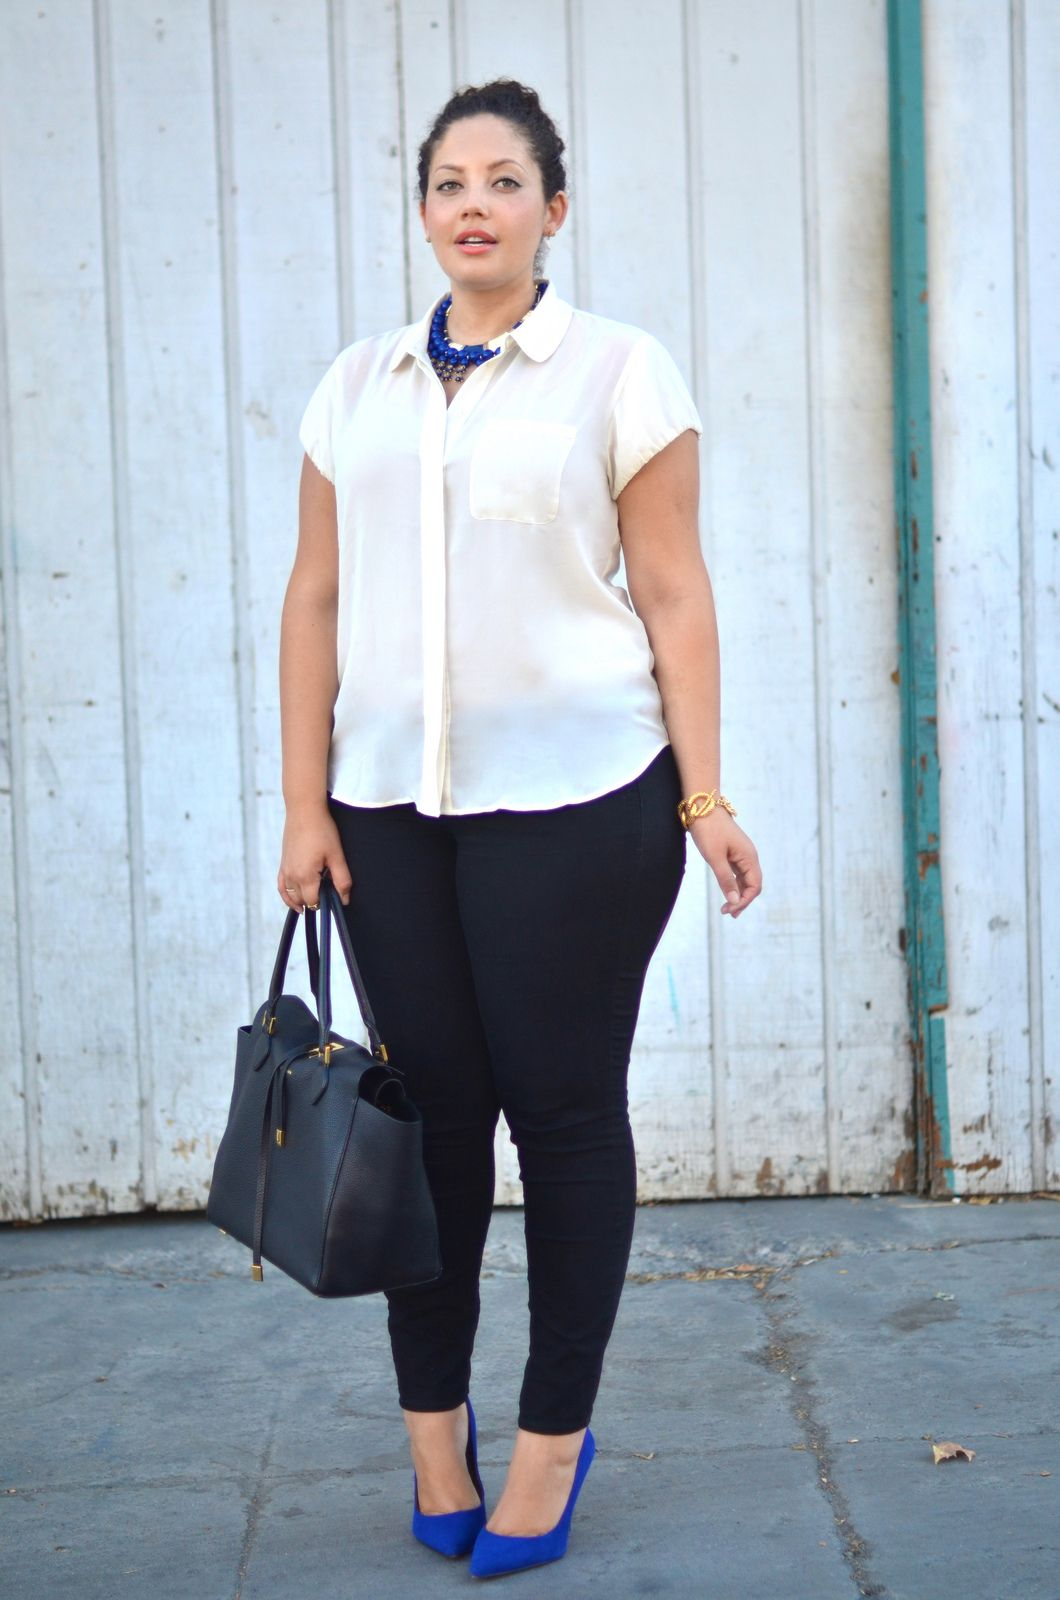 Fashion, Casual Work Outfits, Curvy Fashion